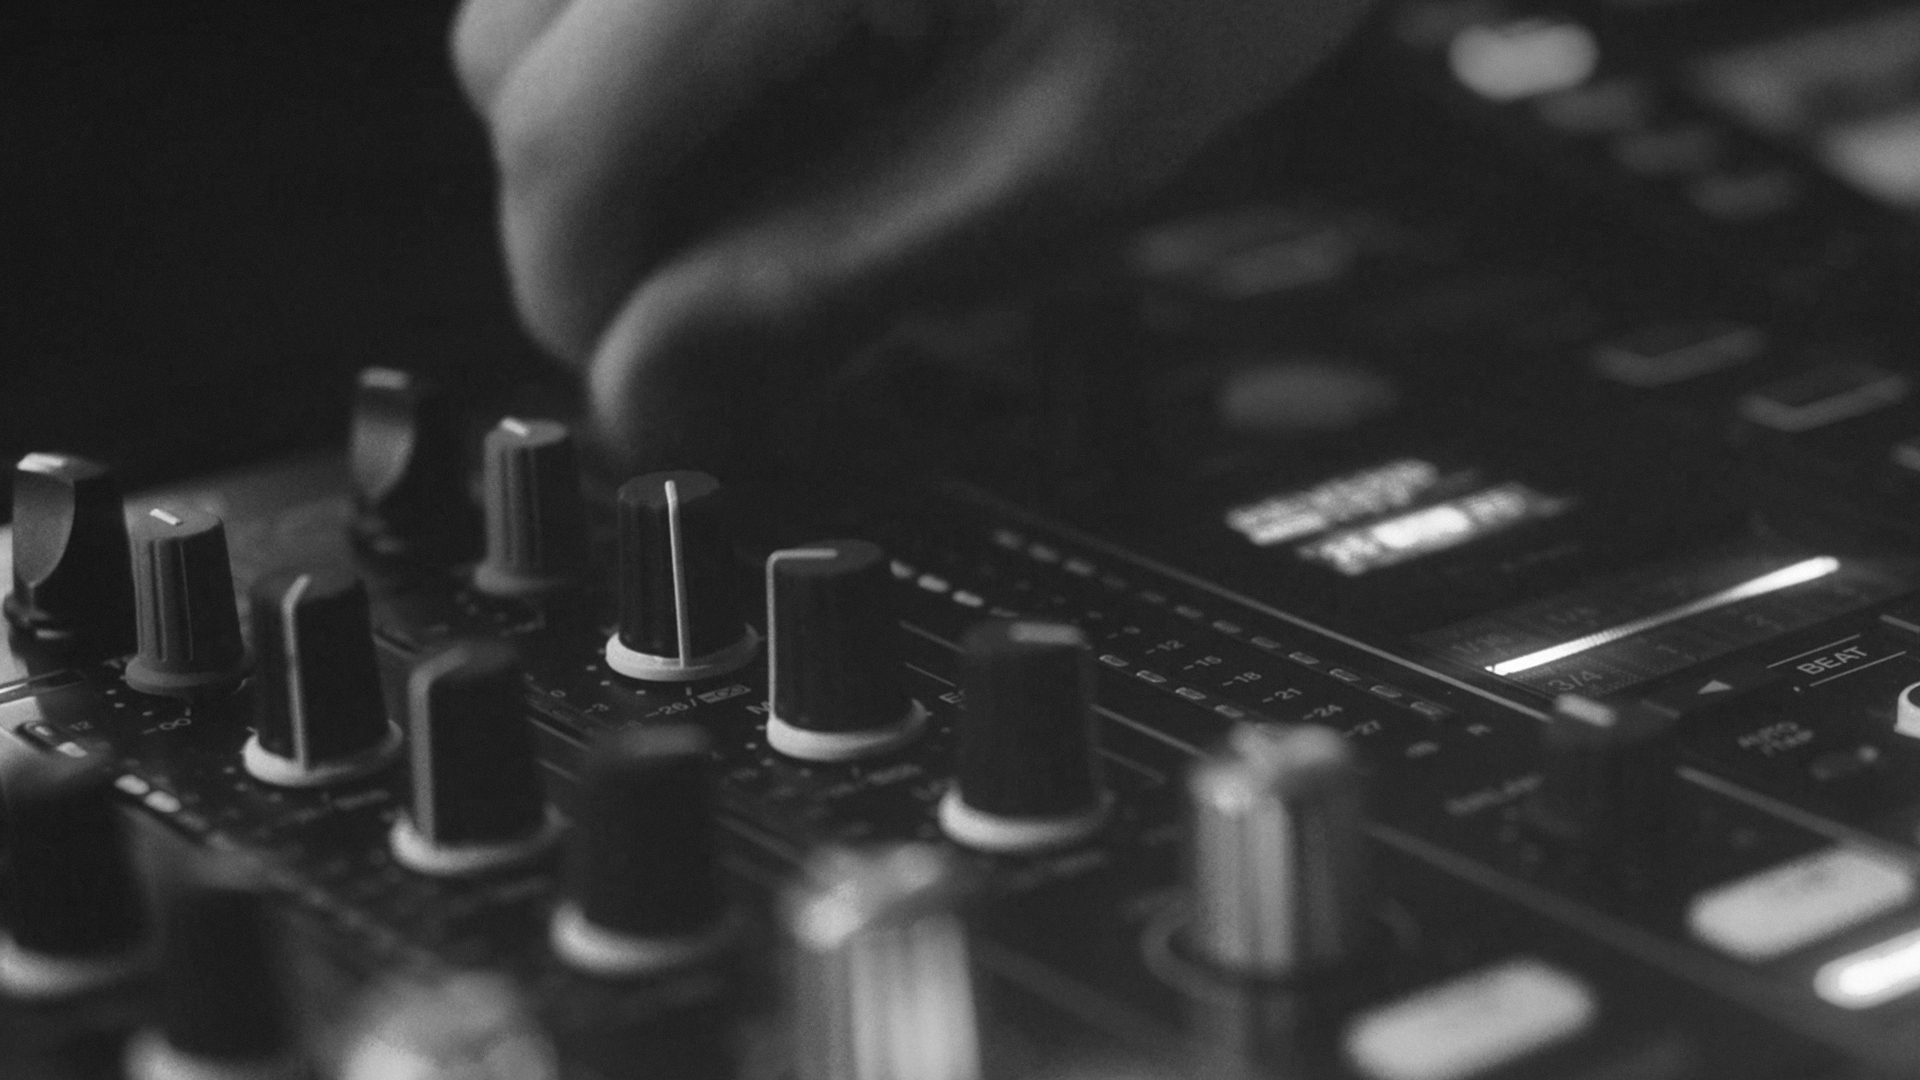 DJ sound mixer in black and white